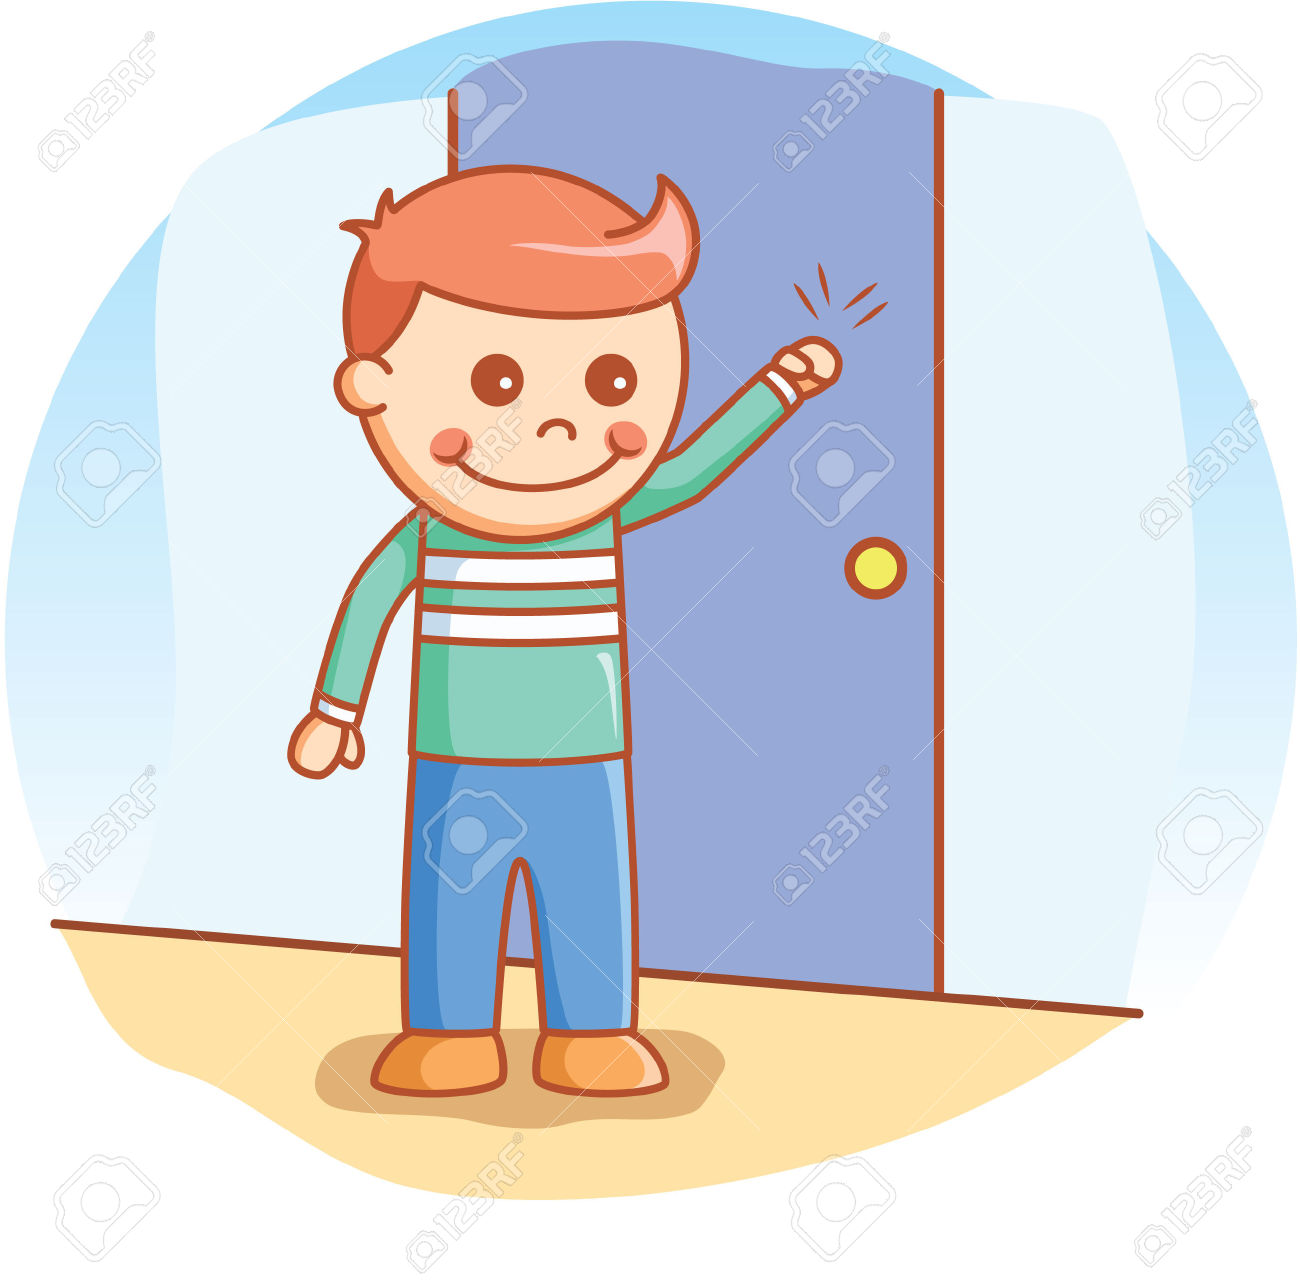 126,060 Door Stock Vector Illustration And Royalty Free Door Clipart.